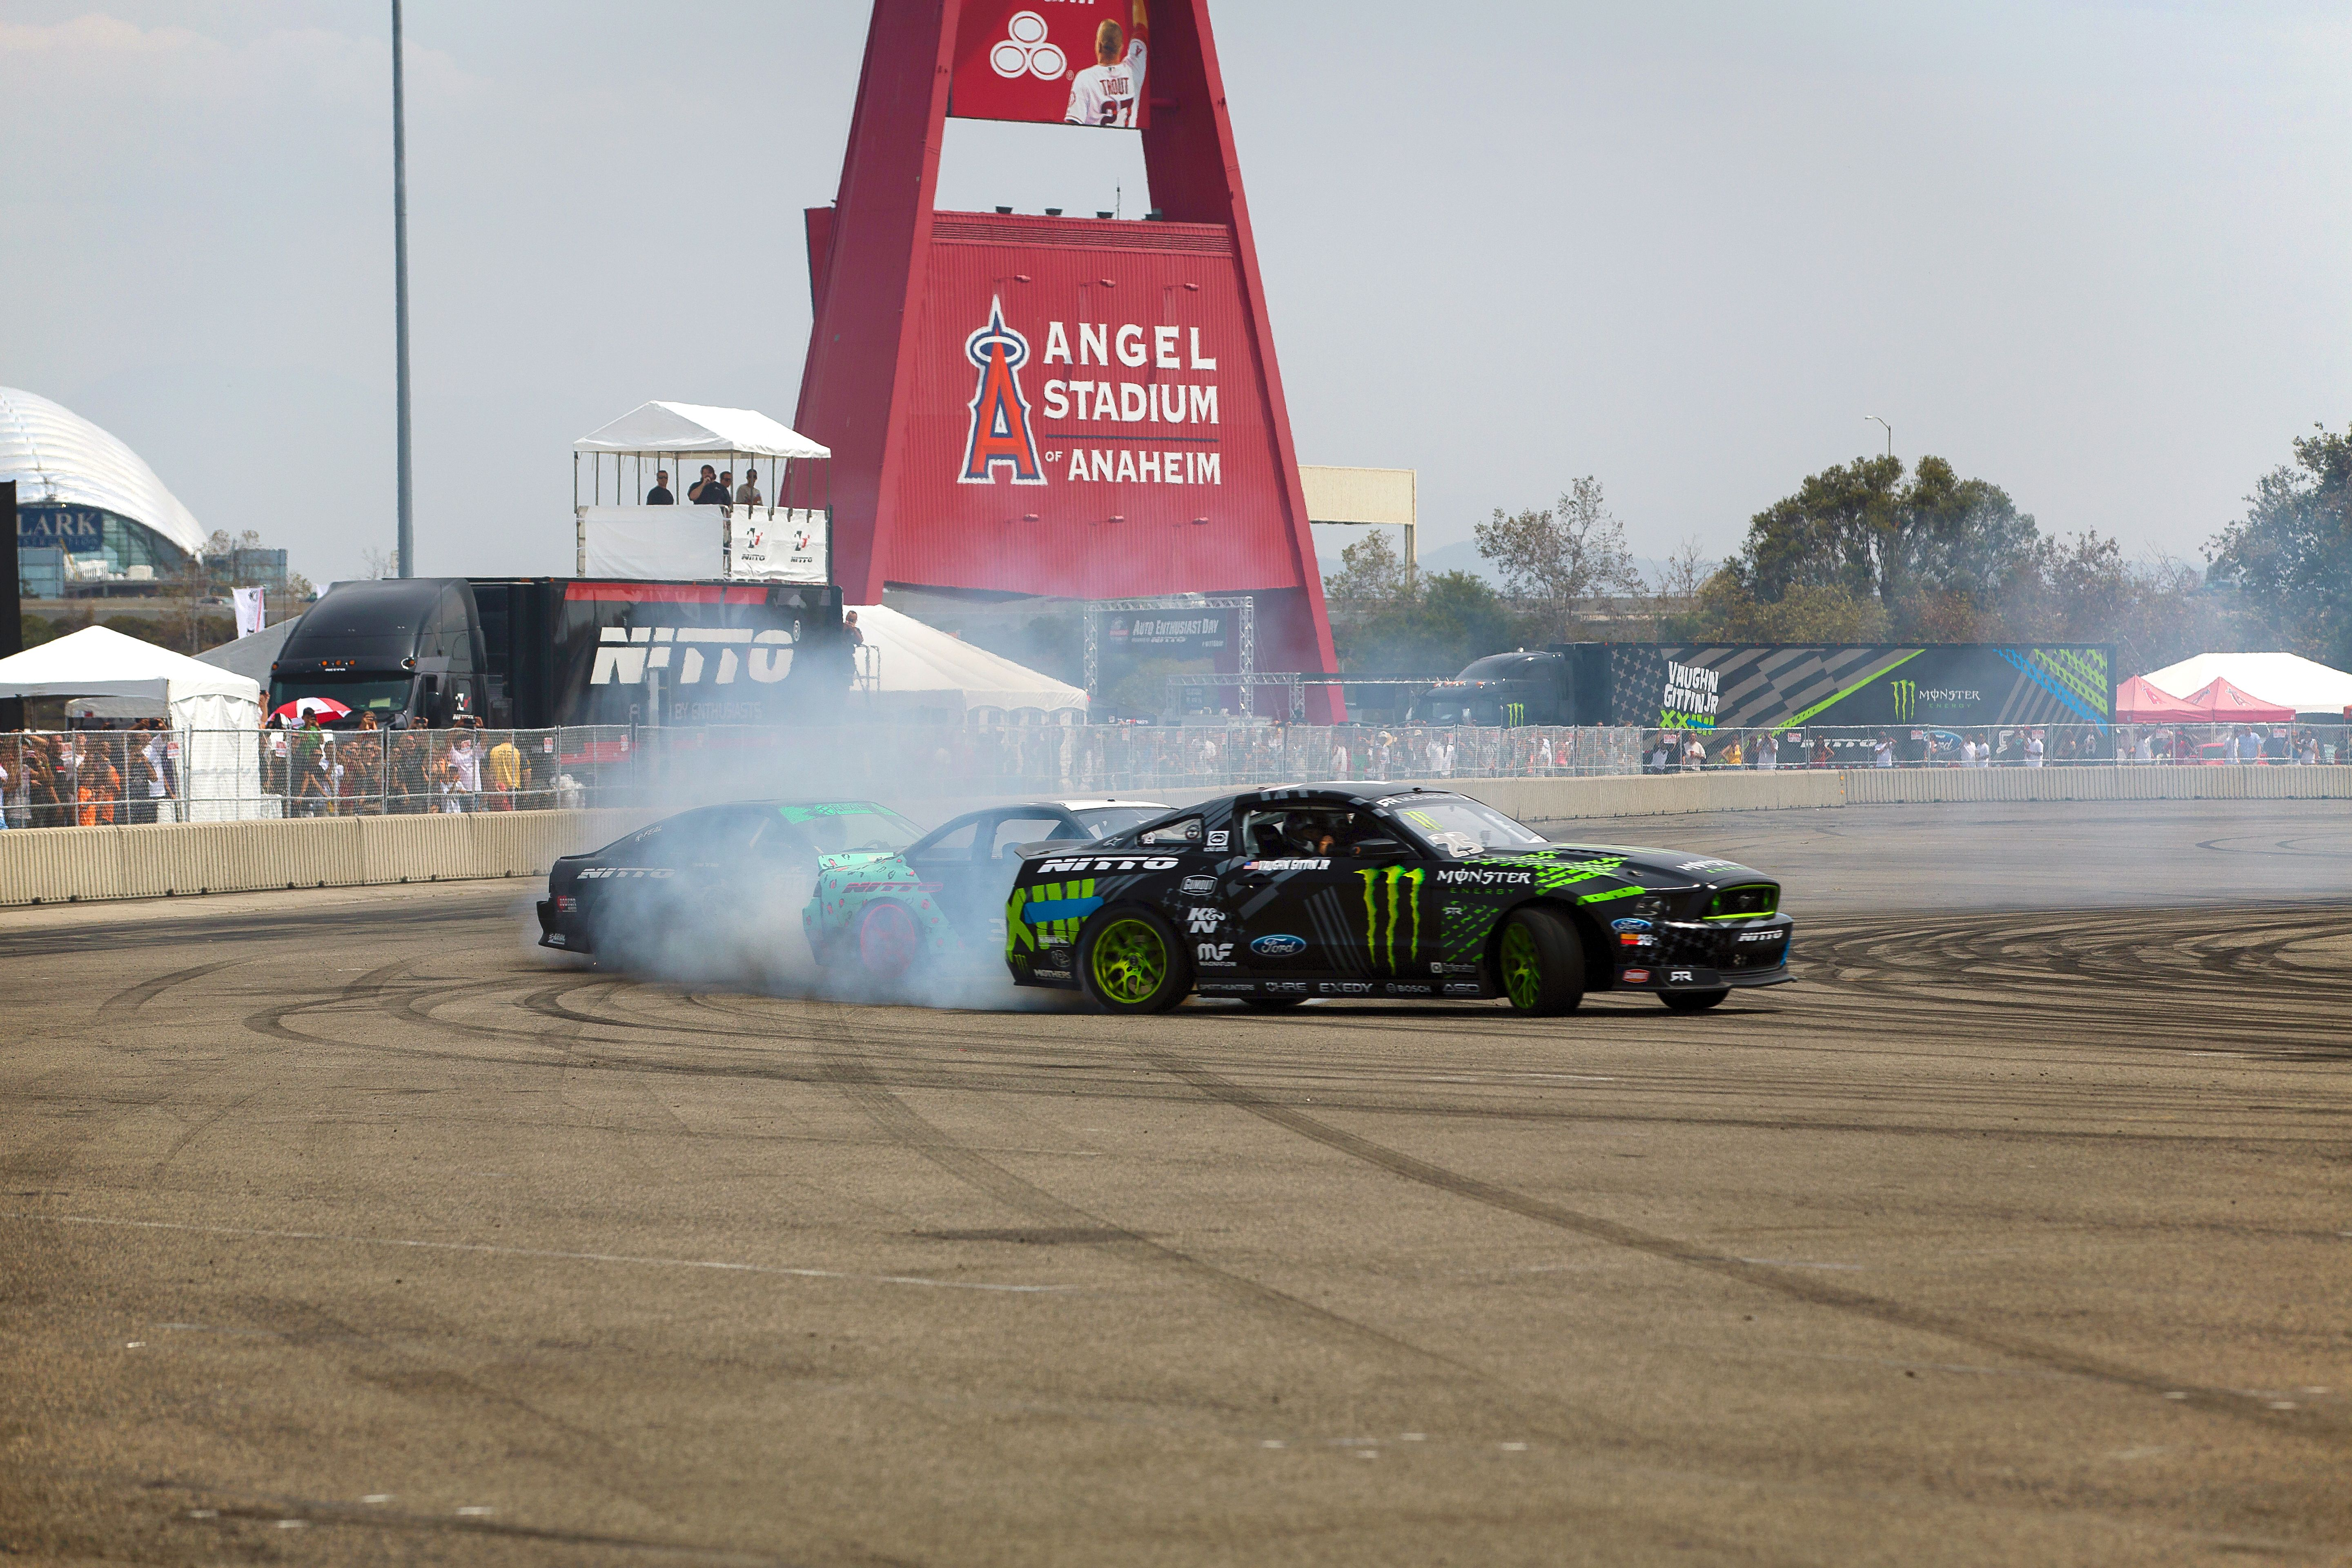 Nitto's Auto Enthusiast Day rolls back to Anaheim